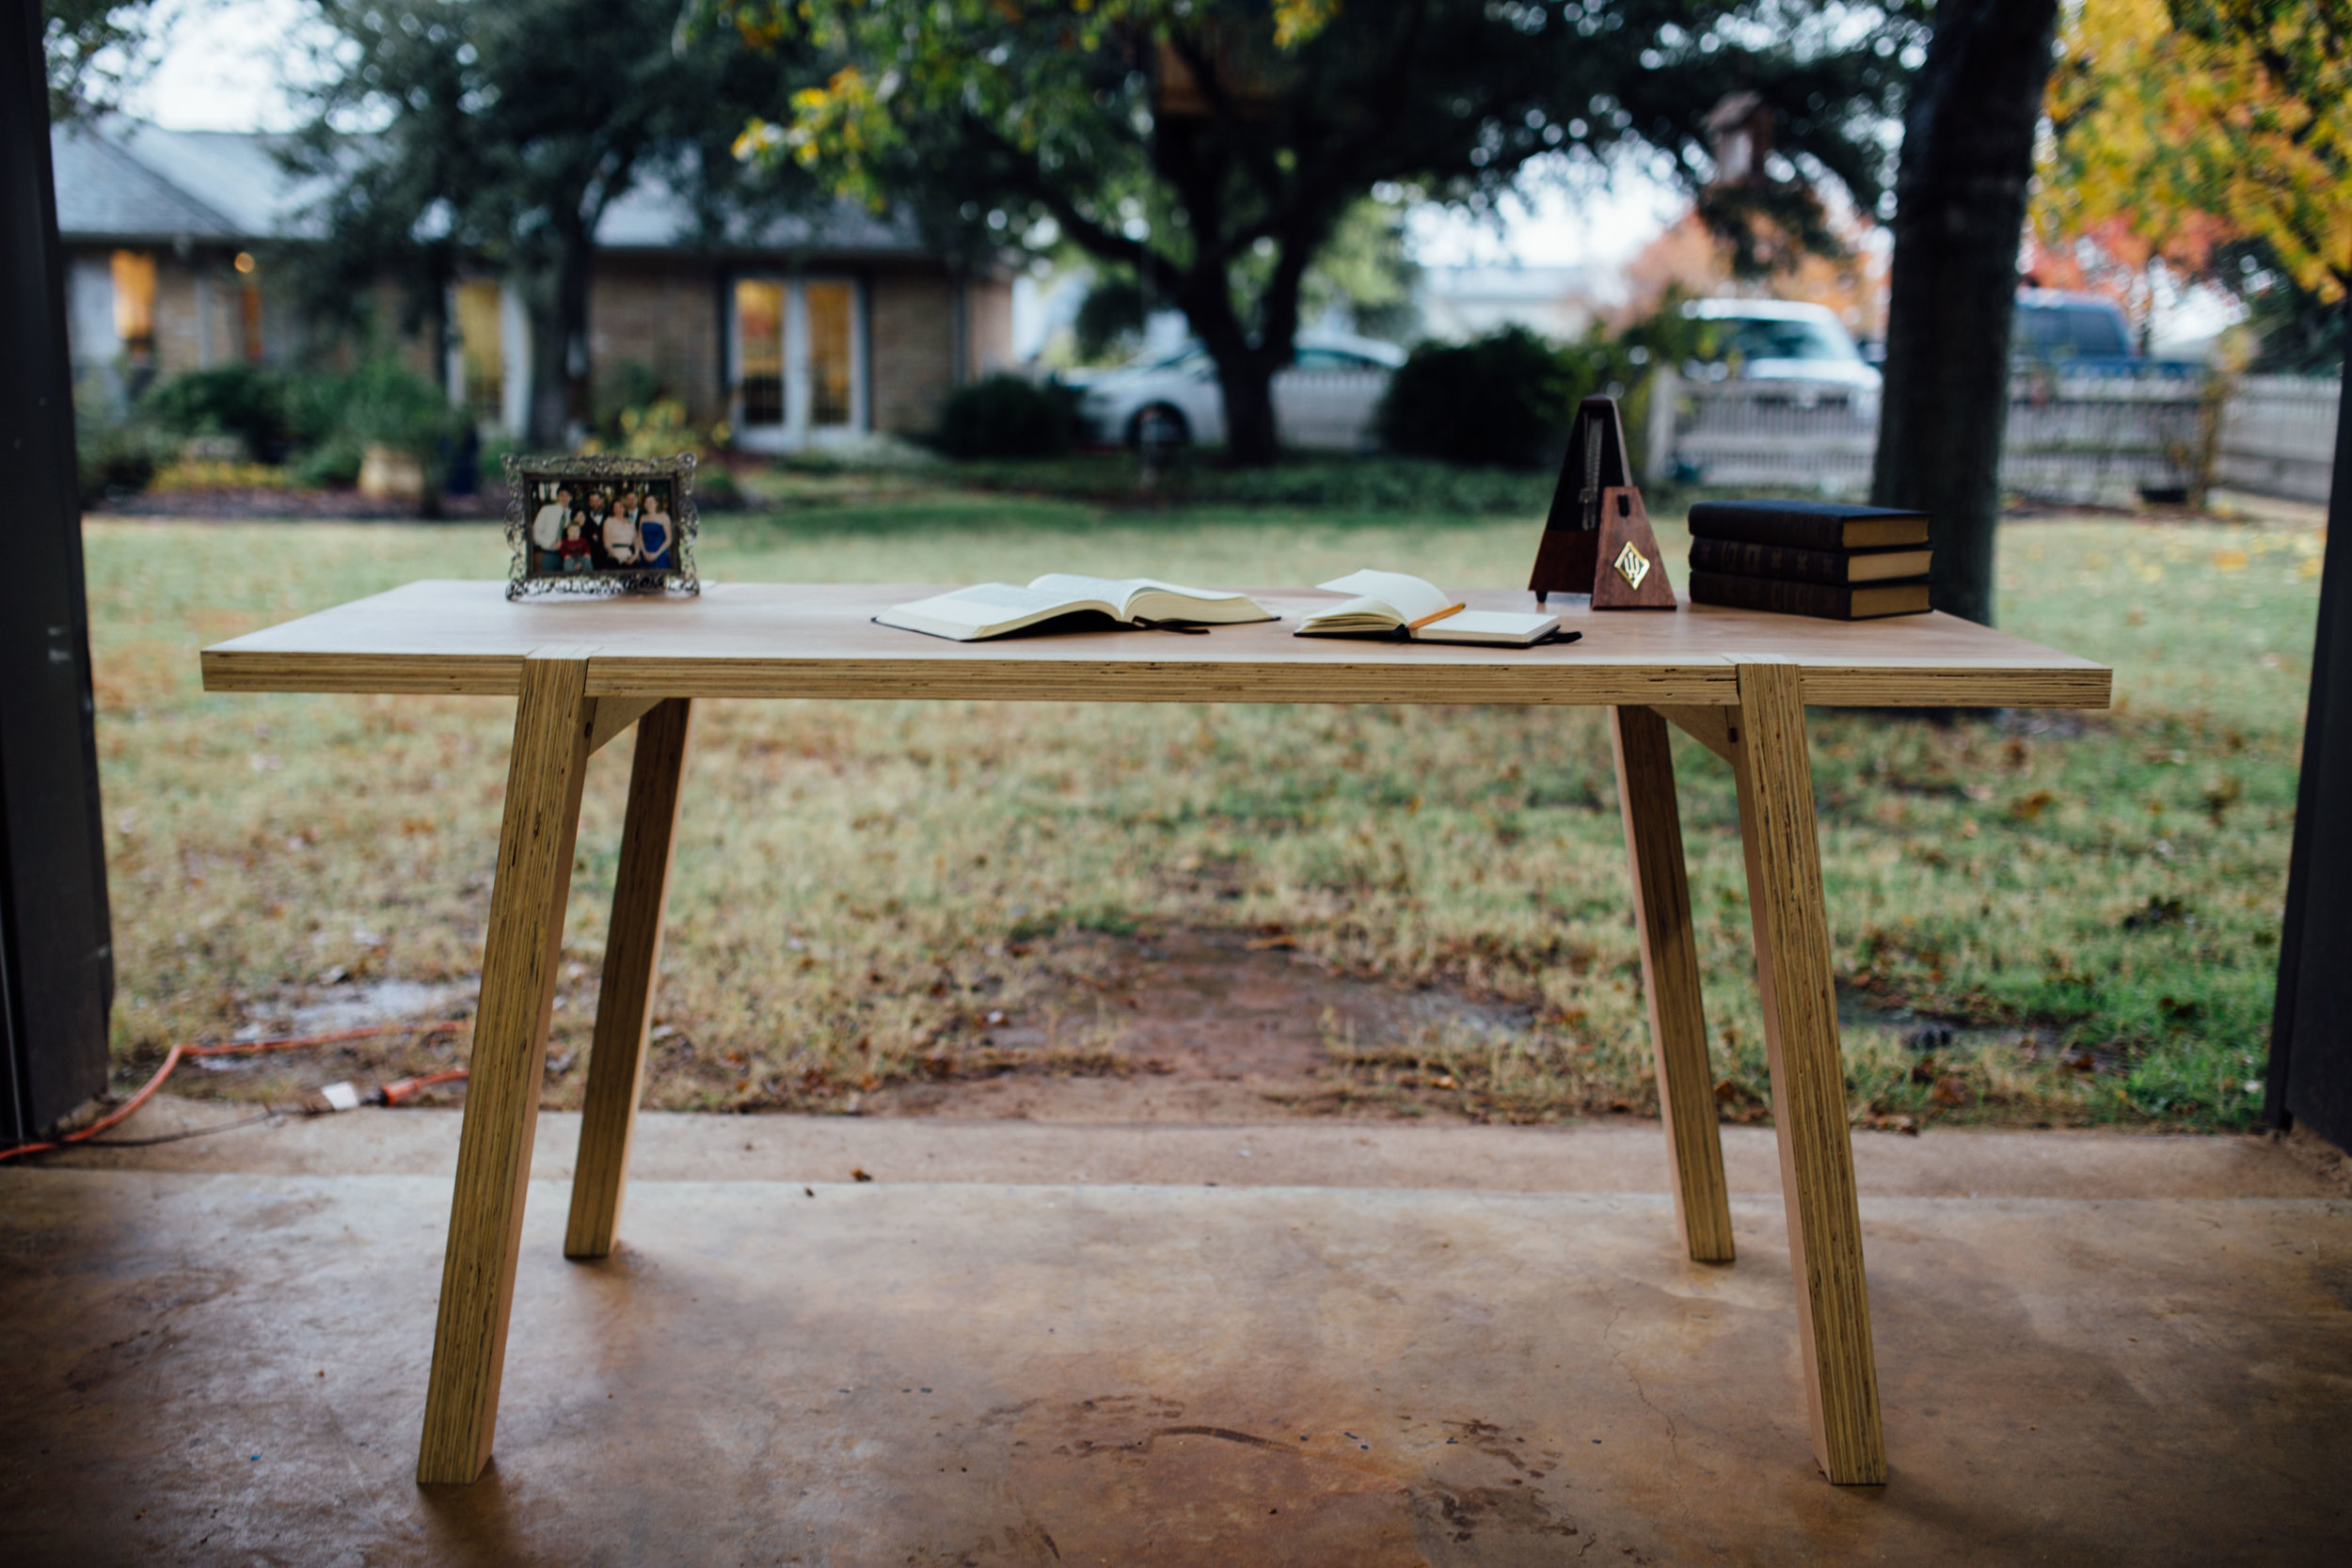 Daniel is selling this beautiful Peacan wood desk for $700.